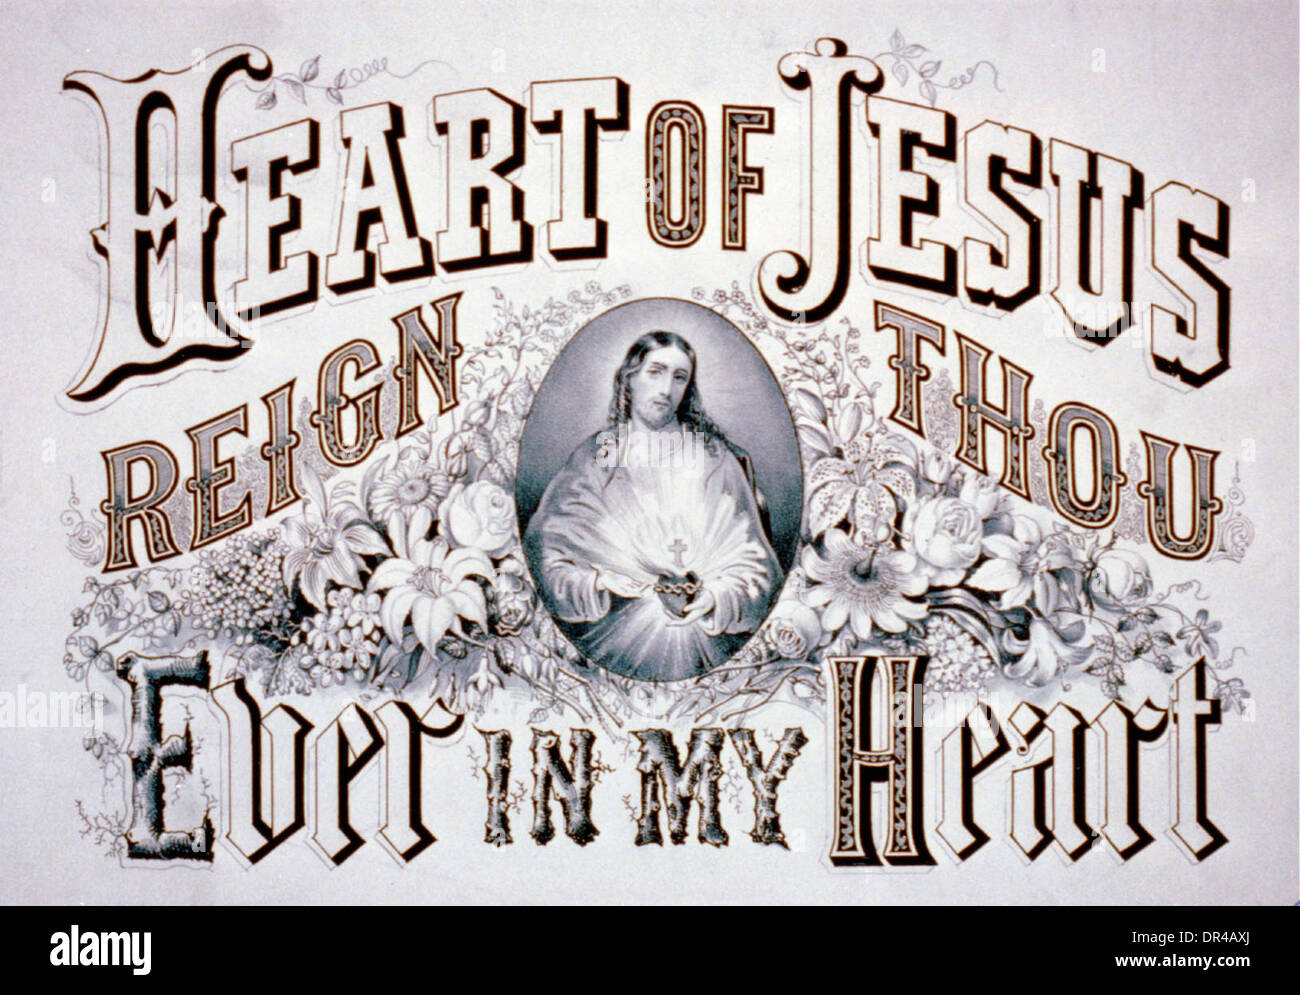 Heart of Jesus - Reign Thou Ever in my Heart - Stock Image